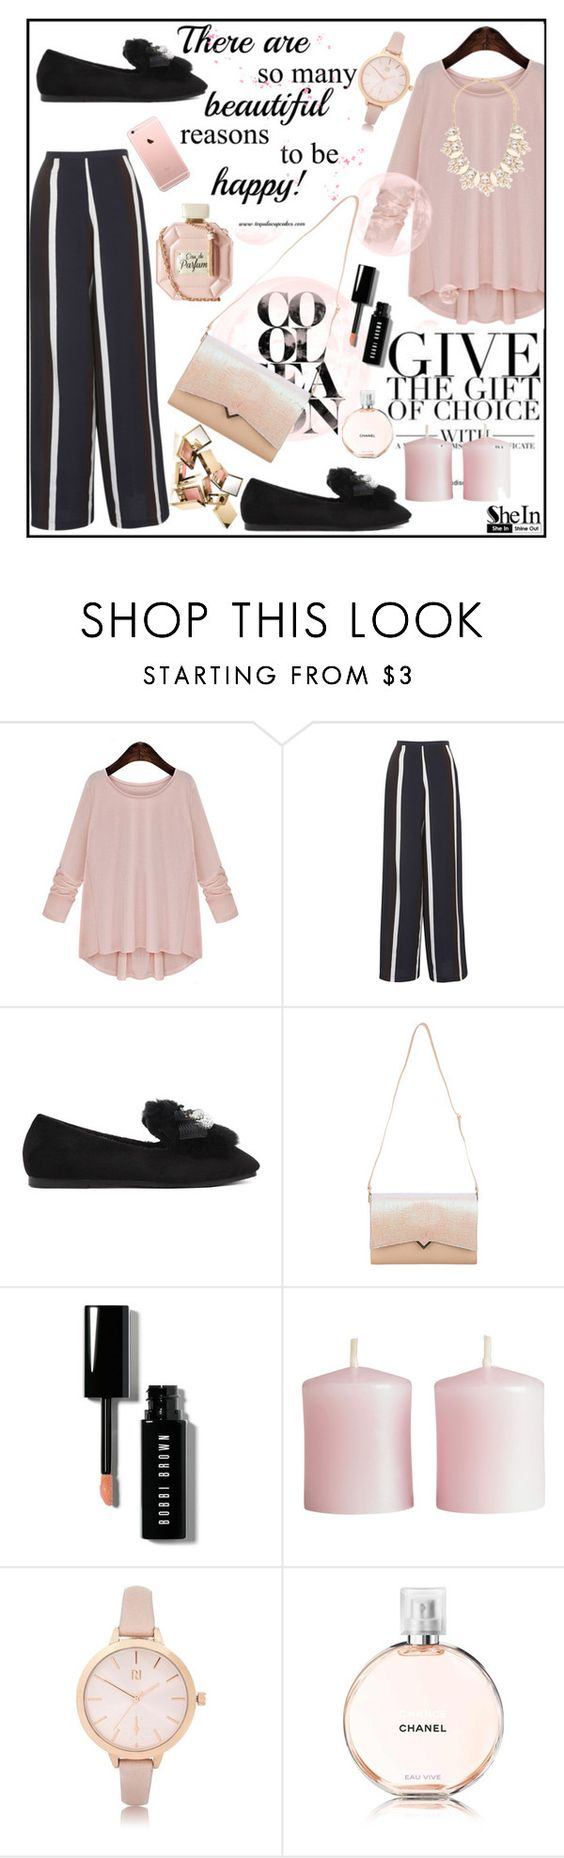 """You are a masterpiece~~!!"" by av-anul ❤ liked on Polyvore featuring Topshop, Bobbi Brown Cosmetics, H&M, River Island, Forever 21, Sheinside, shein and avanul"